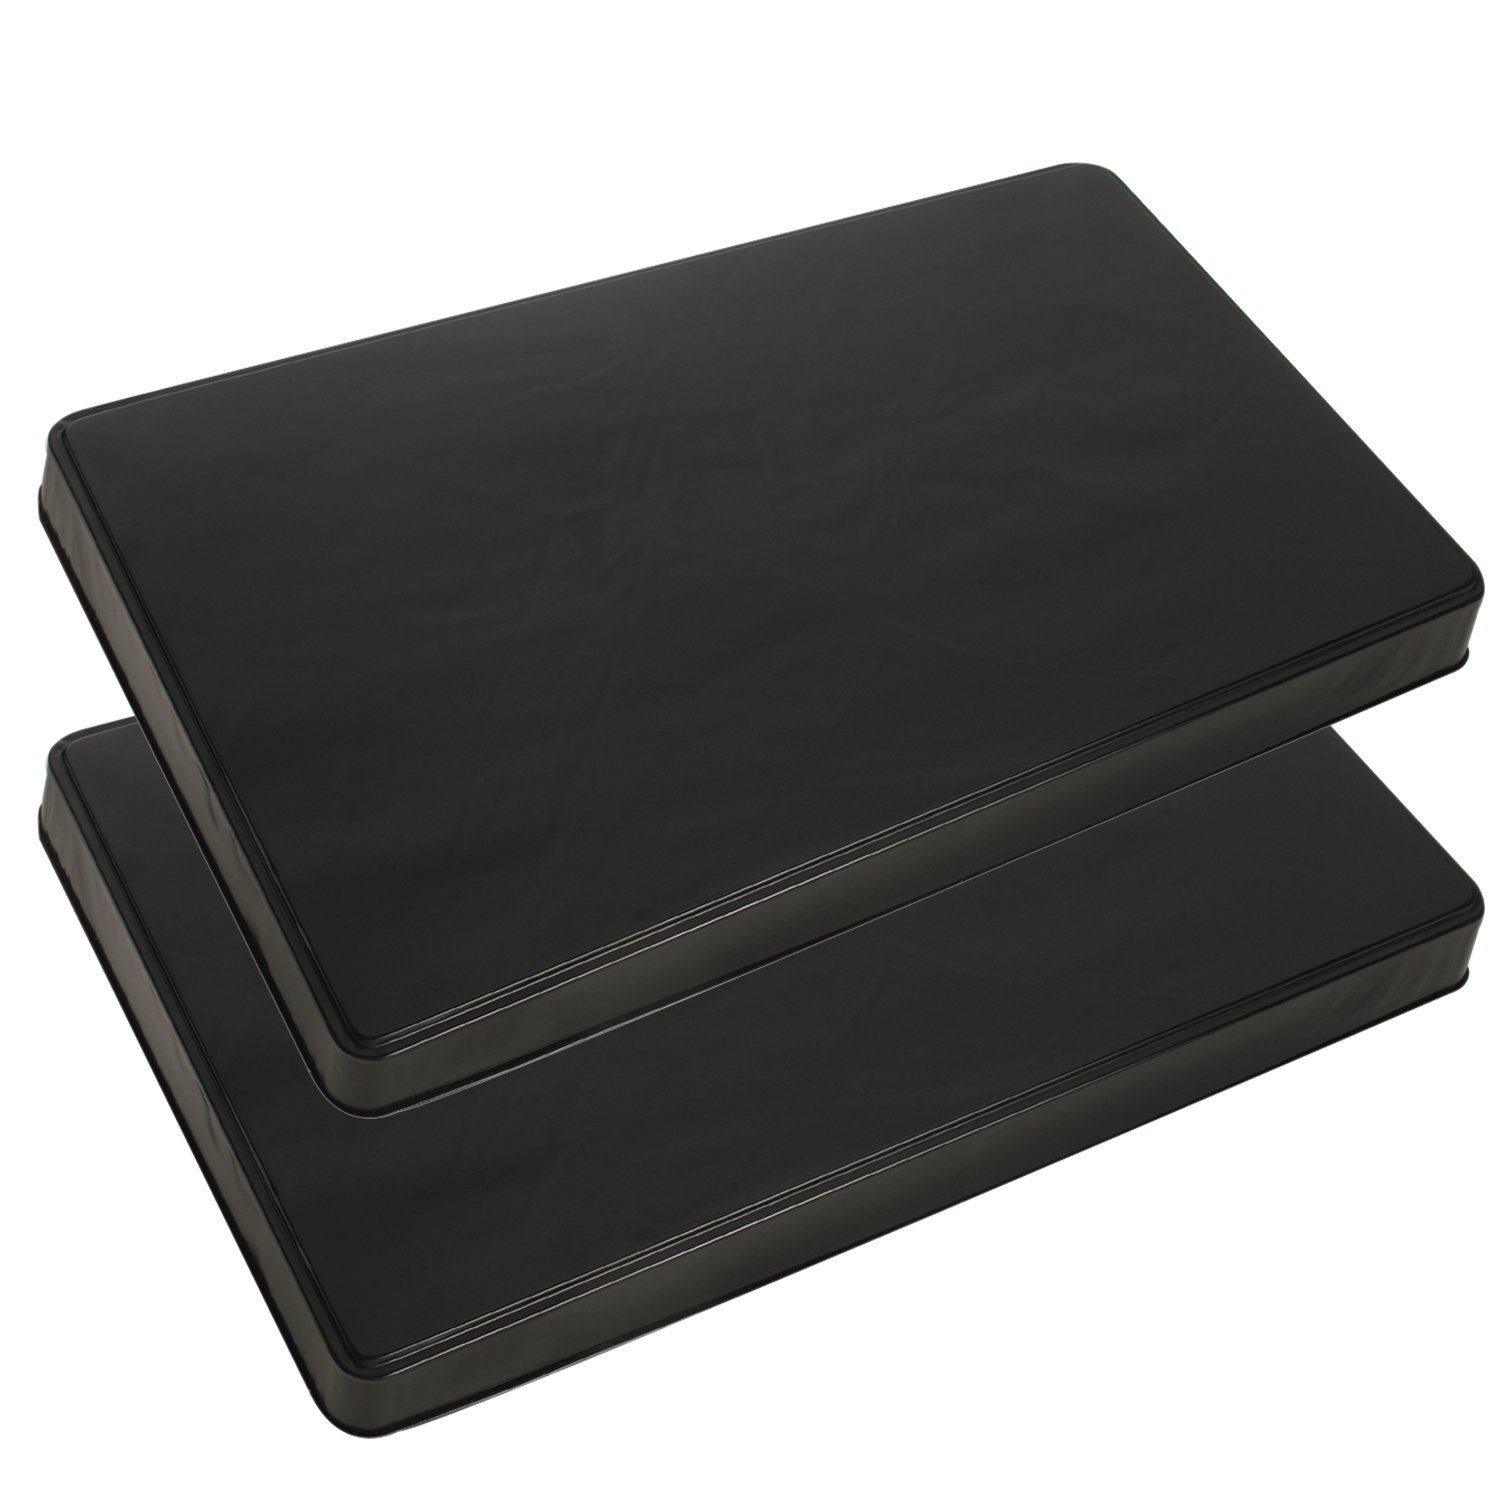 Range Kleen 572 Black Rectangular Burner Cover, Set of 2 - 21 x 11.75 x 1.75 inches